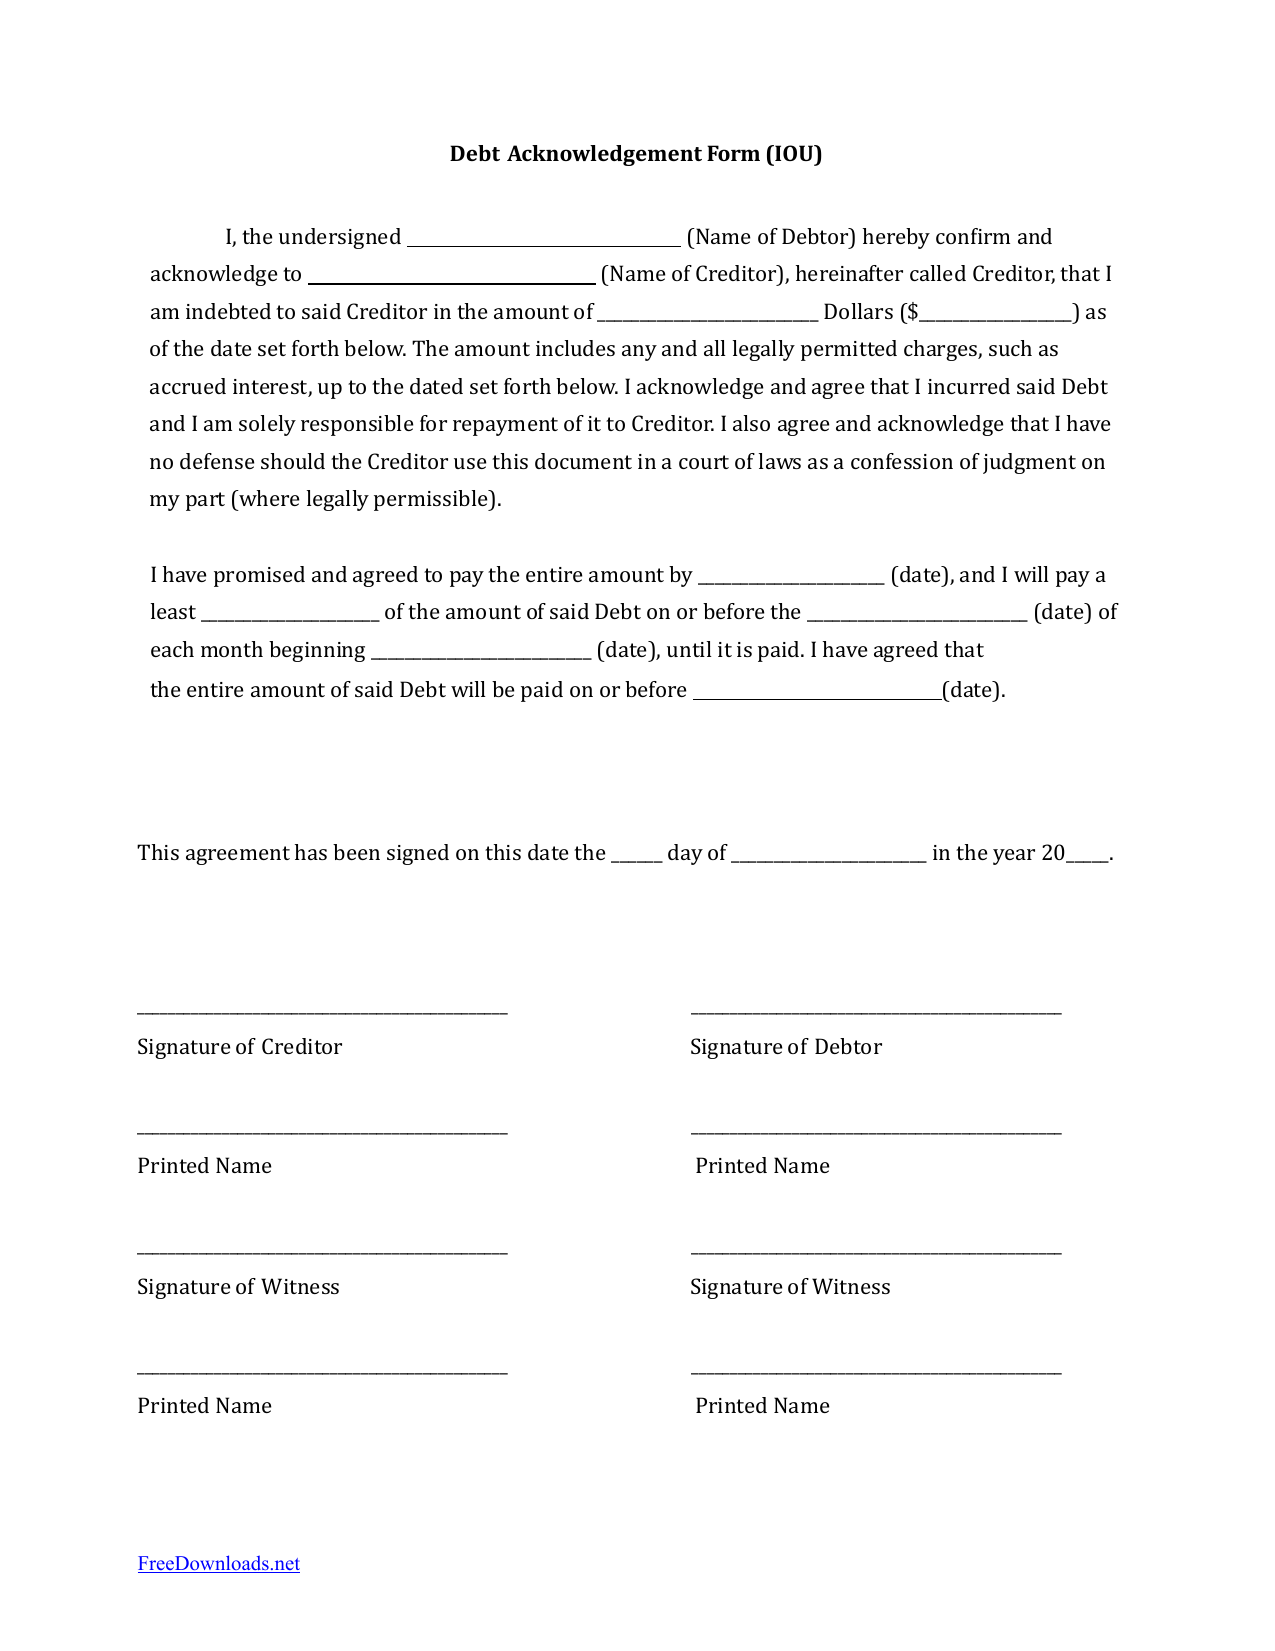 name of creditor application to rent